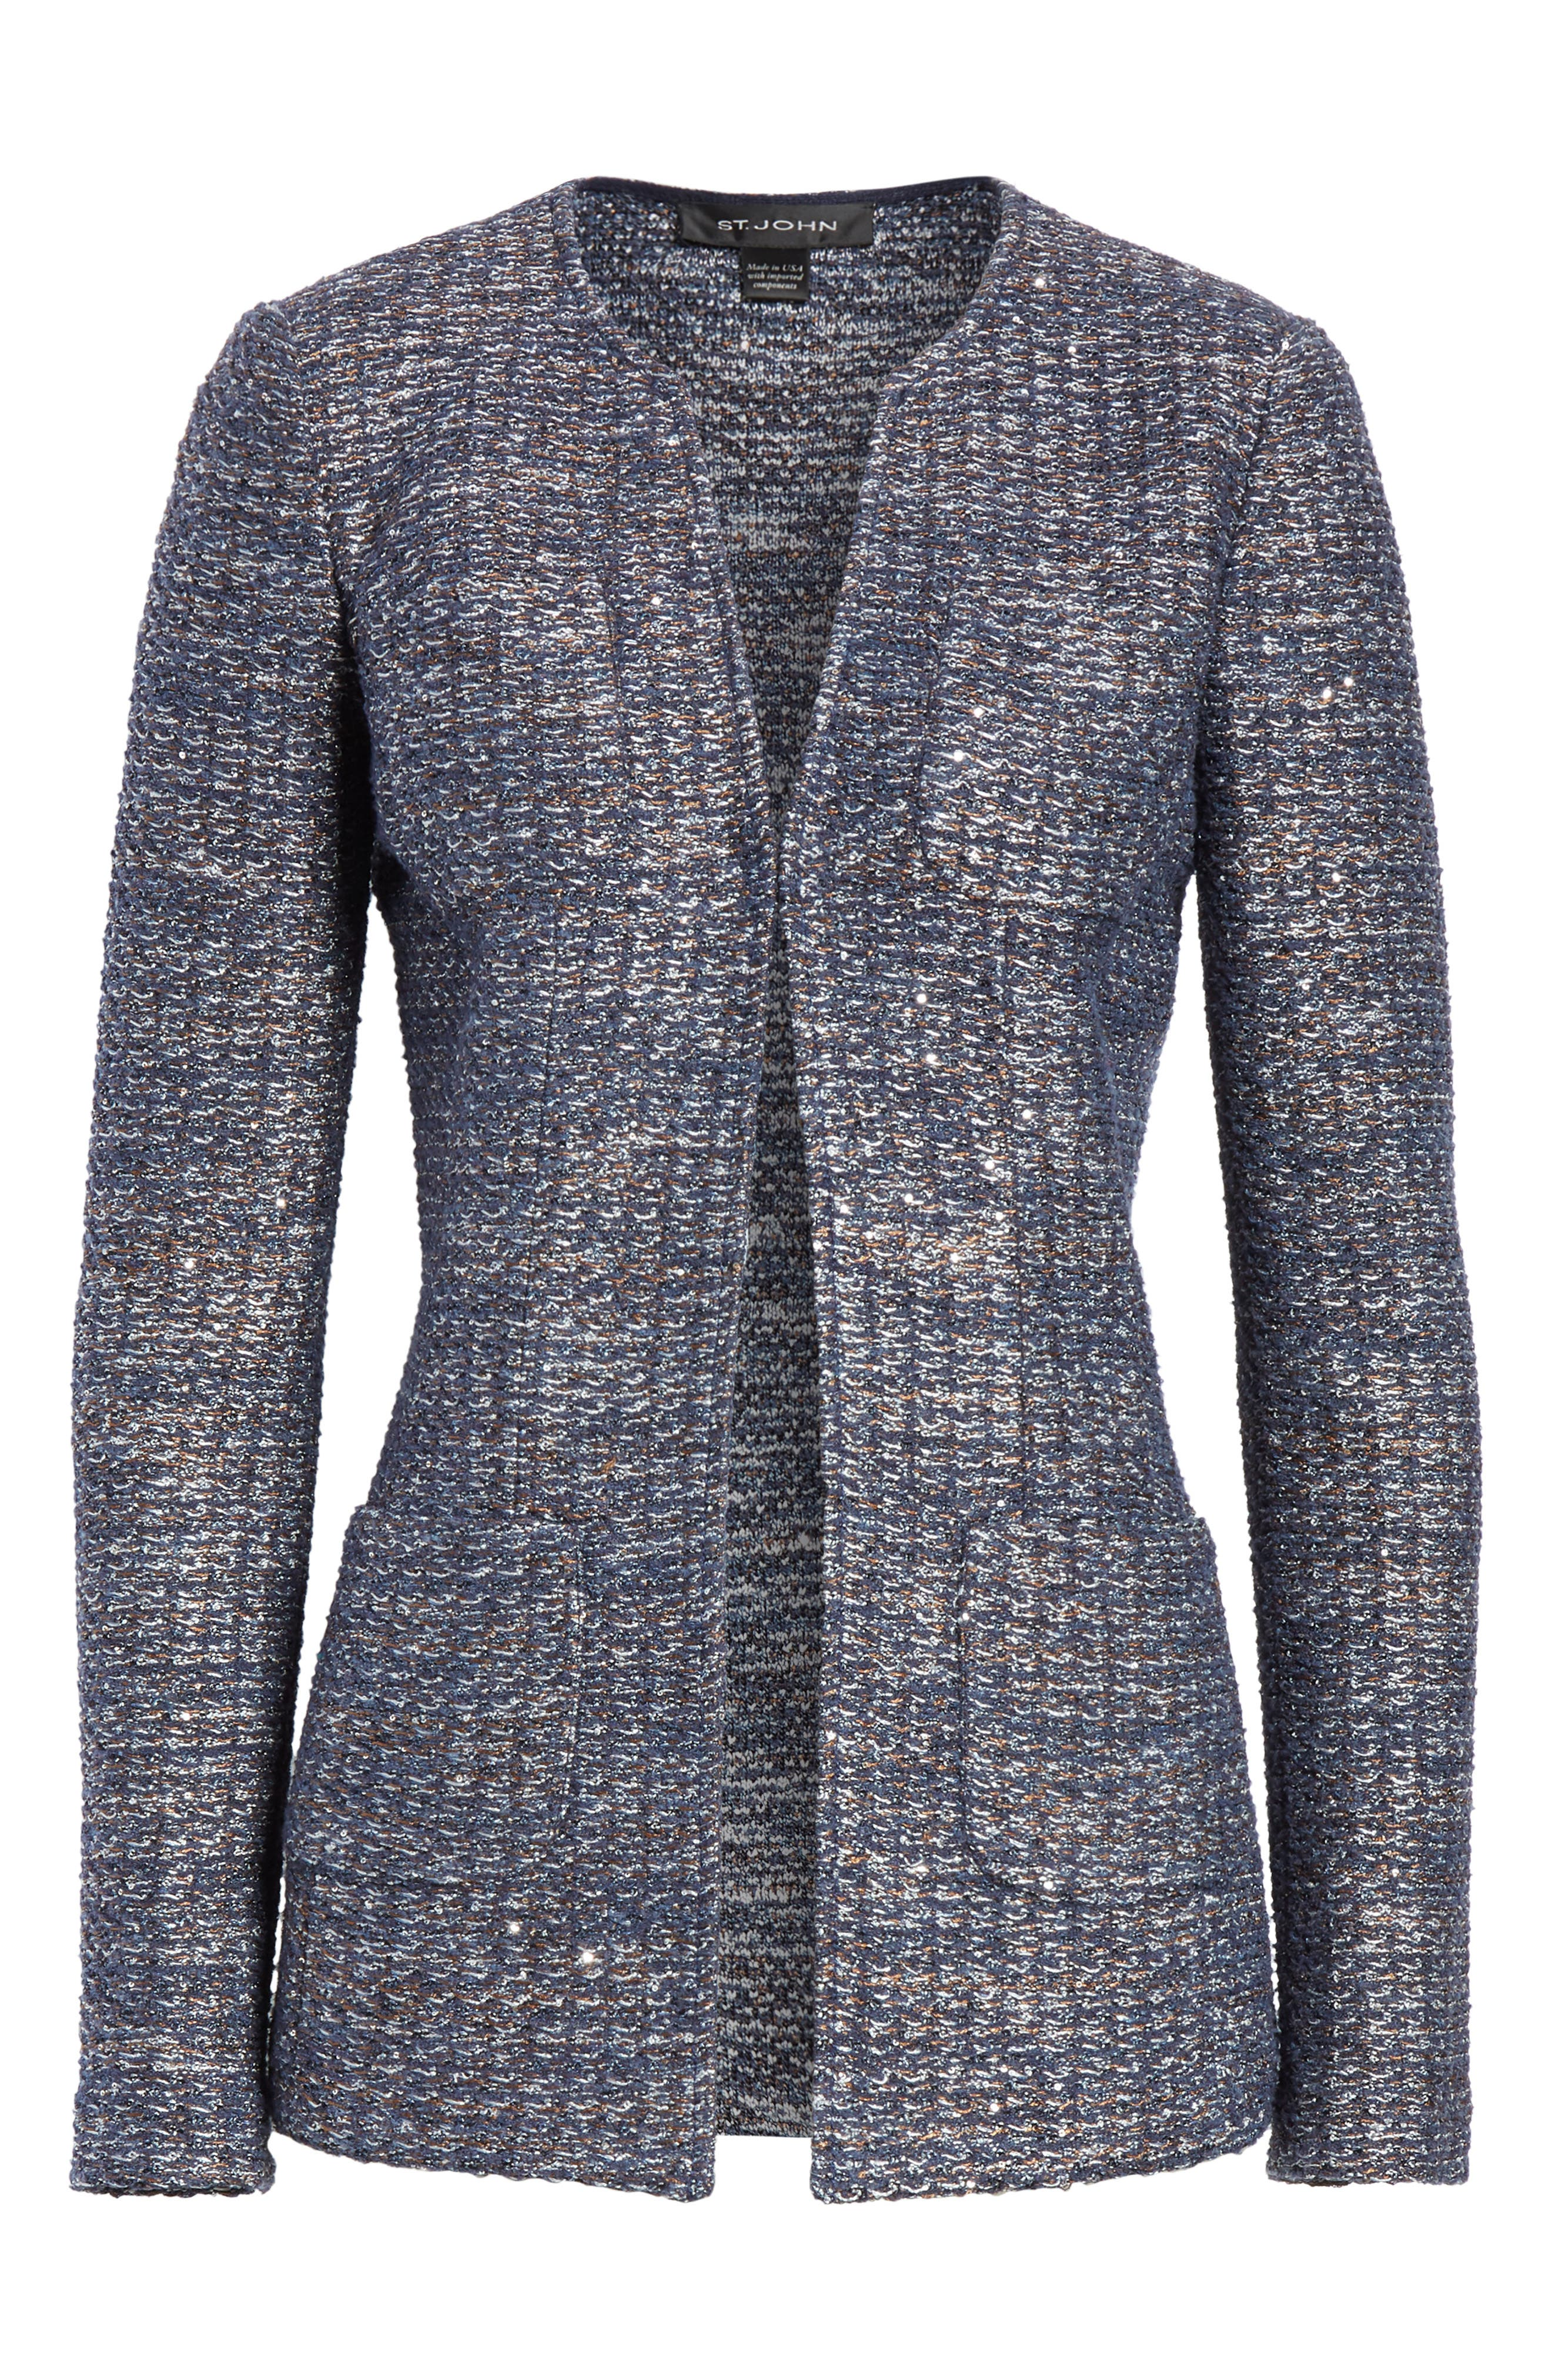 Copper Sequin Tweed Knit Jacket,                             Alternate thumbnail 5, color,                             410